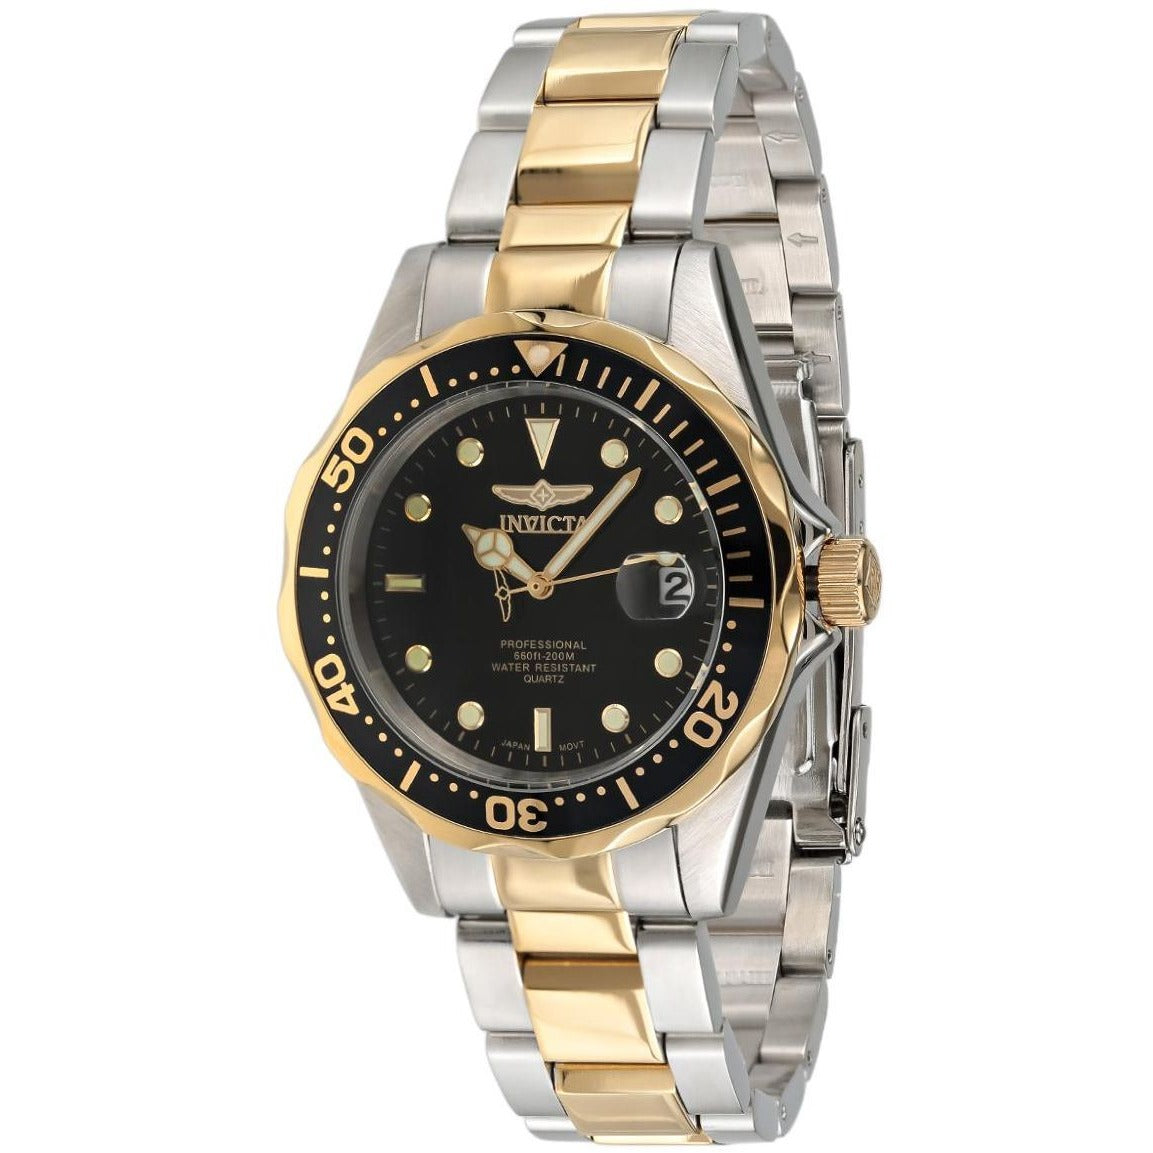 Invicta 8934 Pro Diver Men's Black Dial Stainless Steel Band Watch